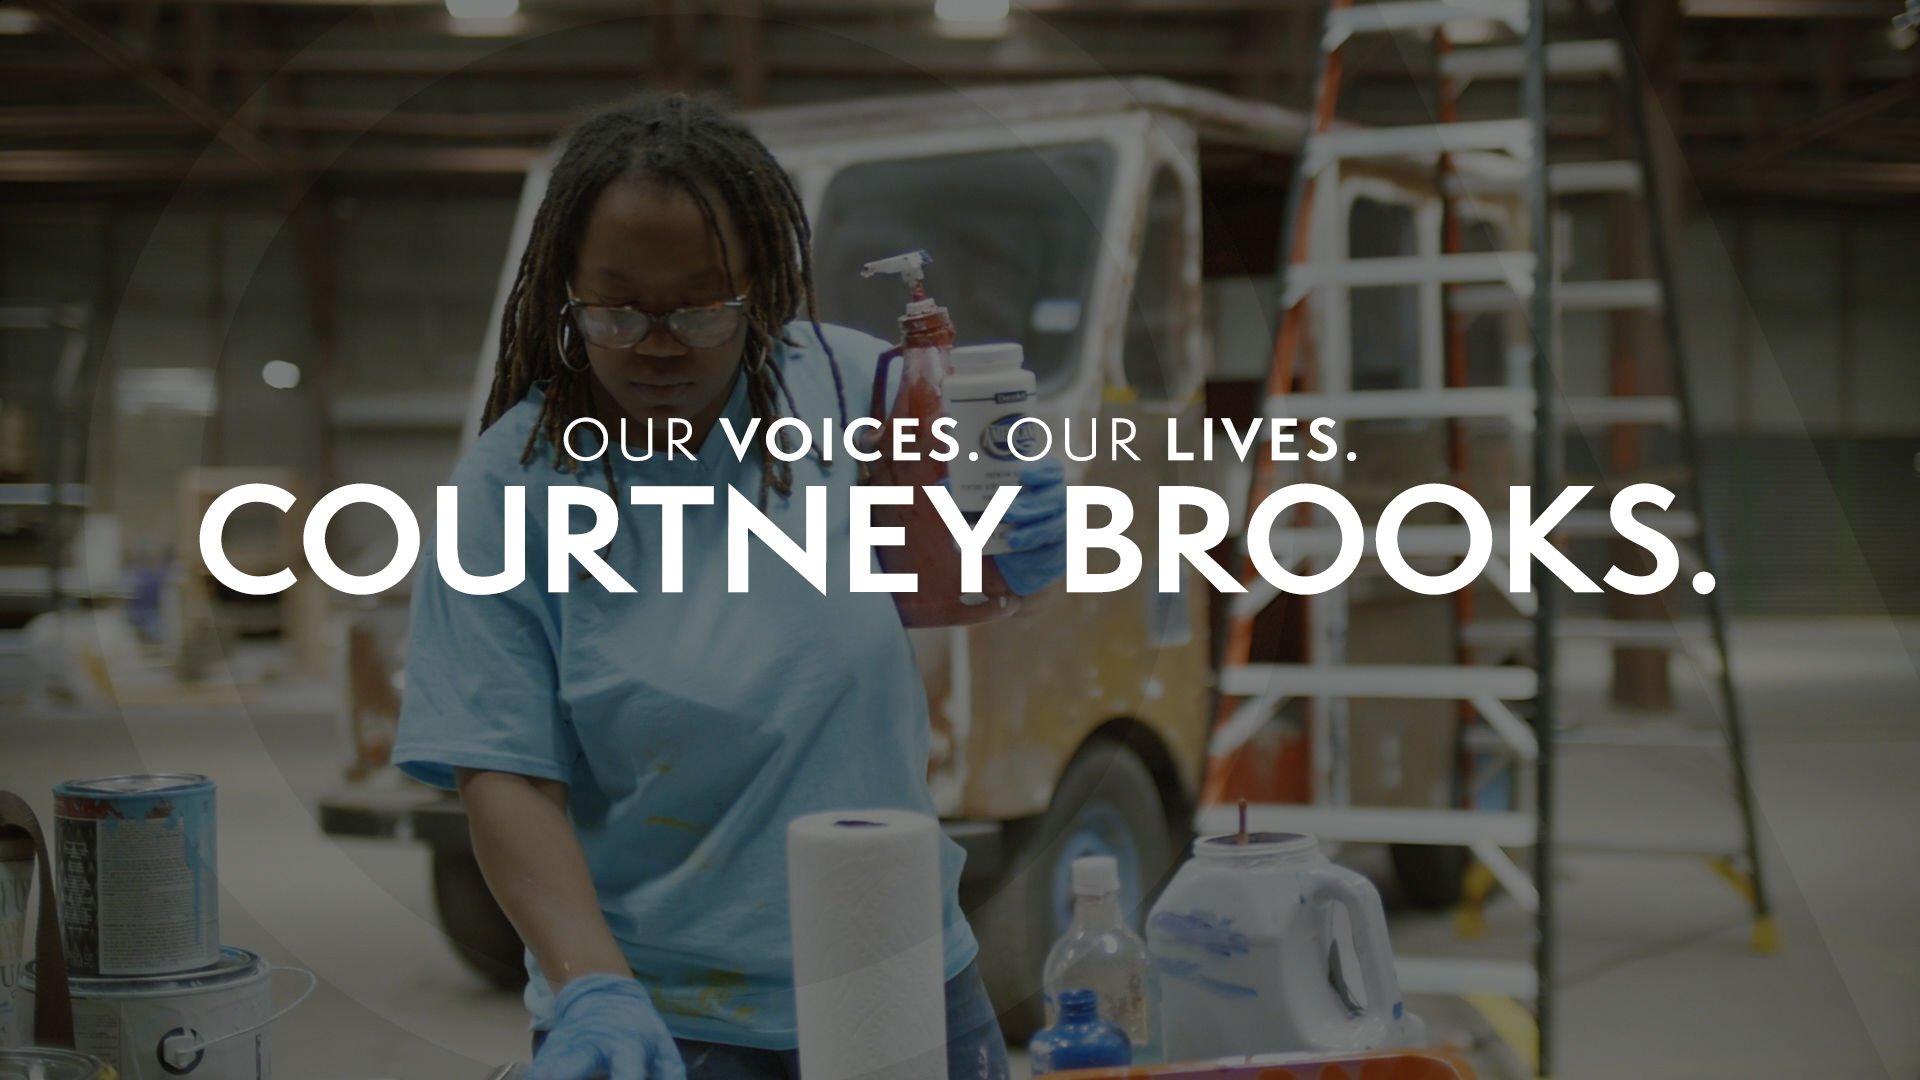 Our Voices. Our Lives. presents COURTNEY BROOKS.